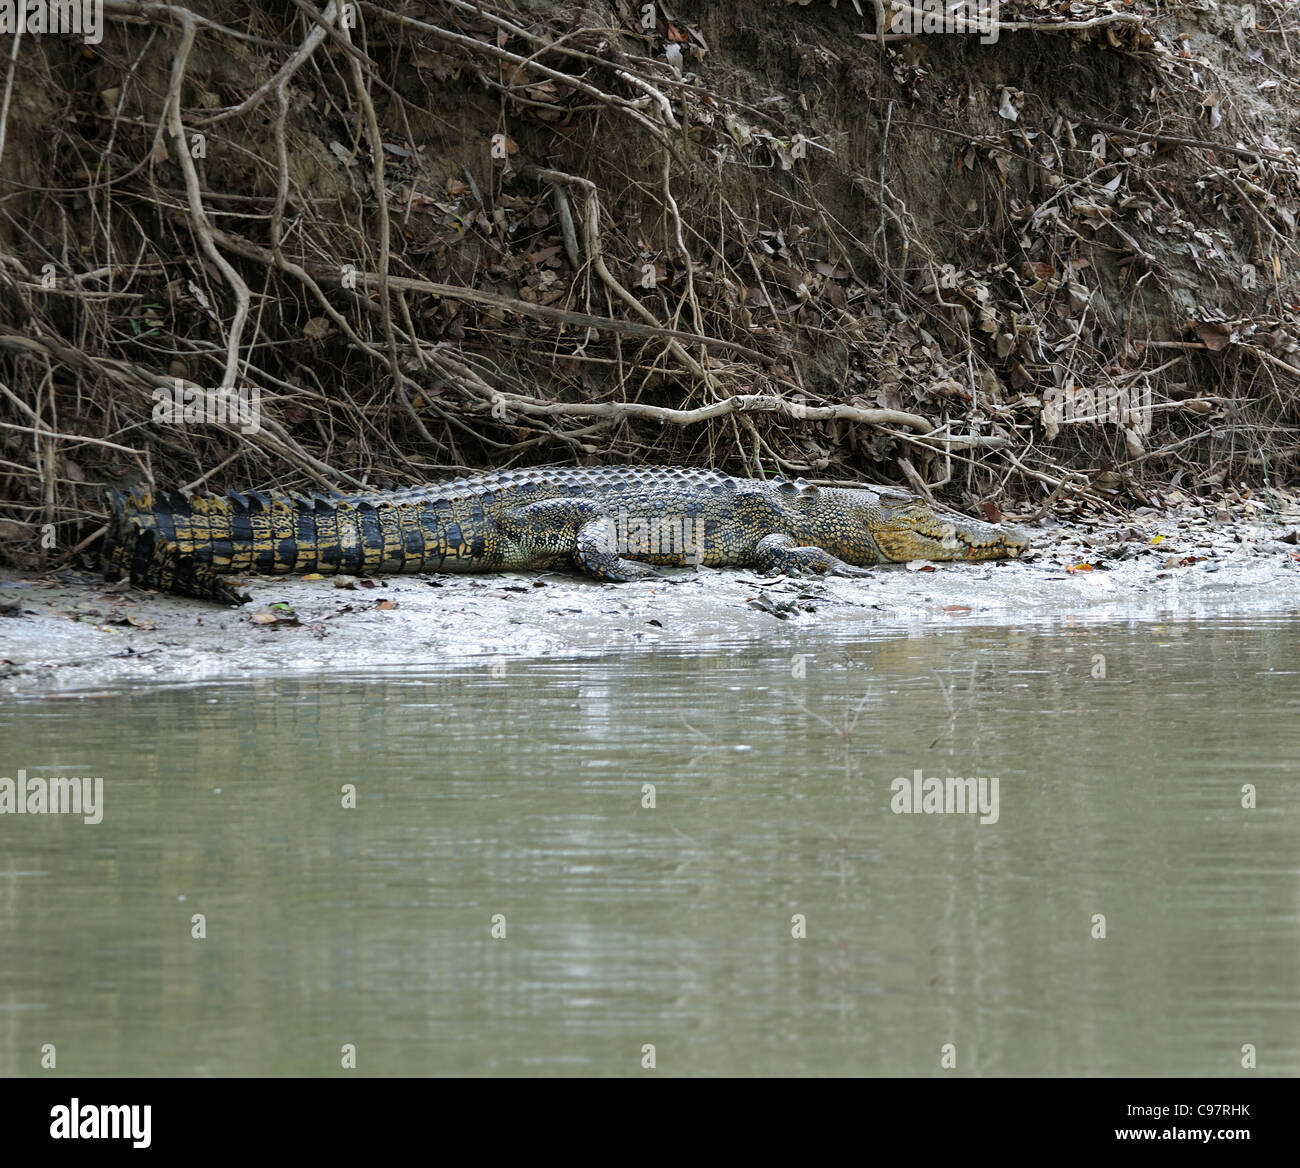 Salt water crocodile resting under cover on the banks of the East Alligator River, Kakadu, Top End, Northern Territory, Stock Photo